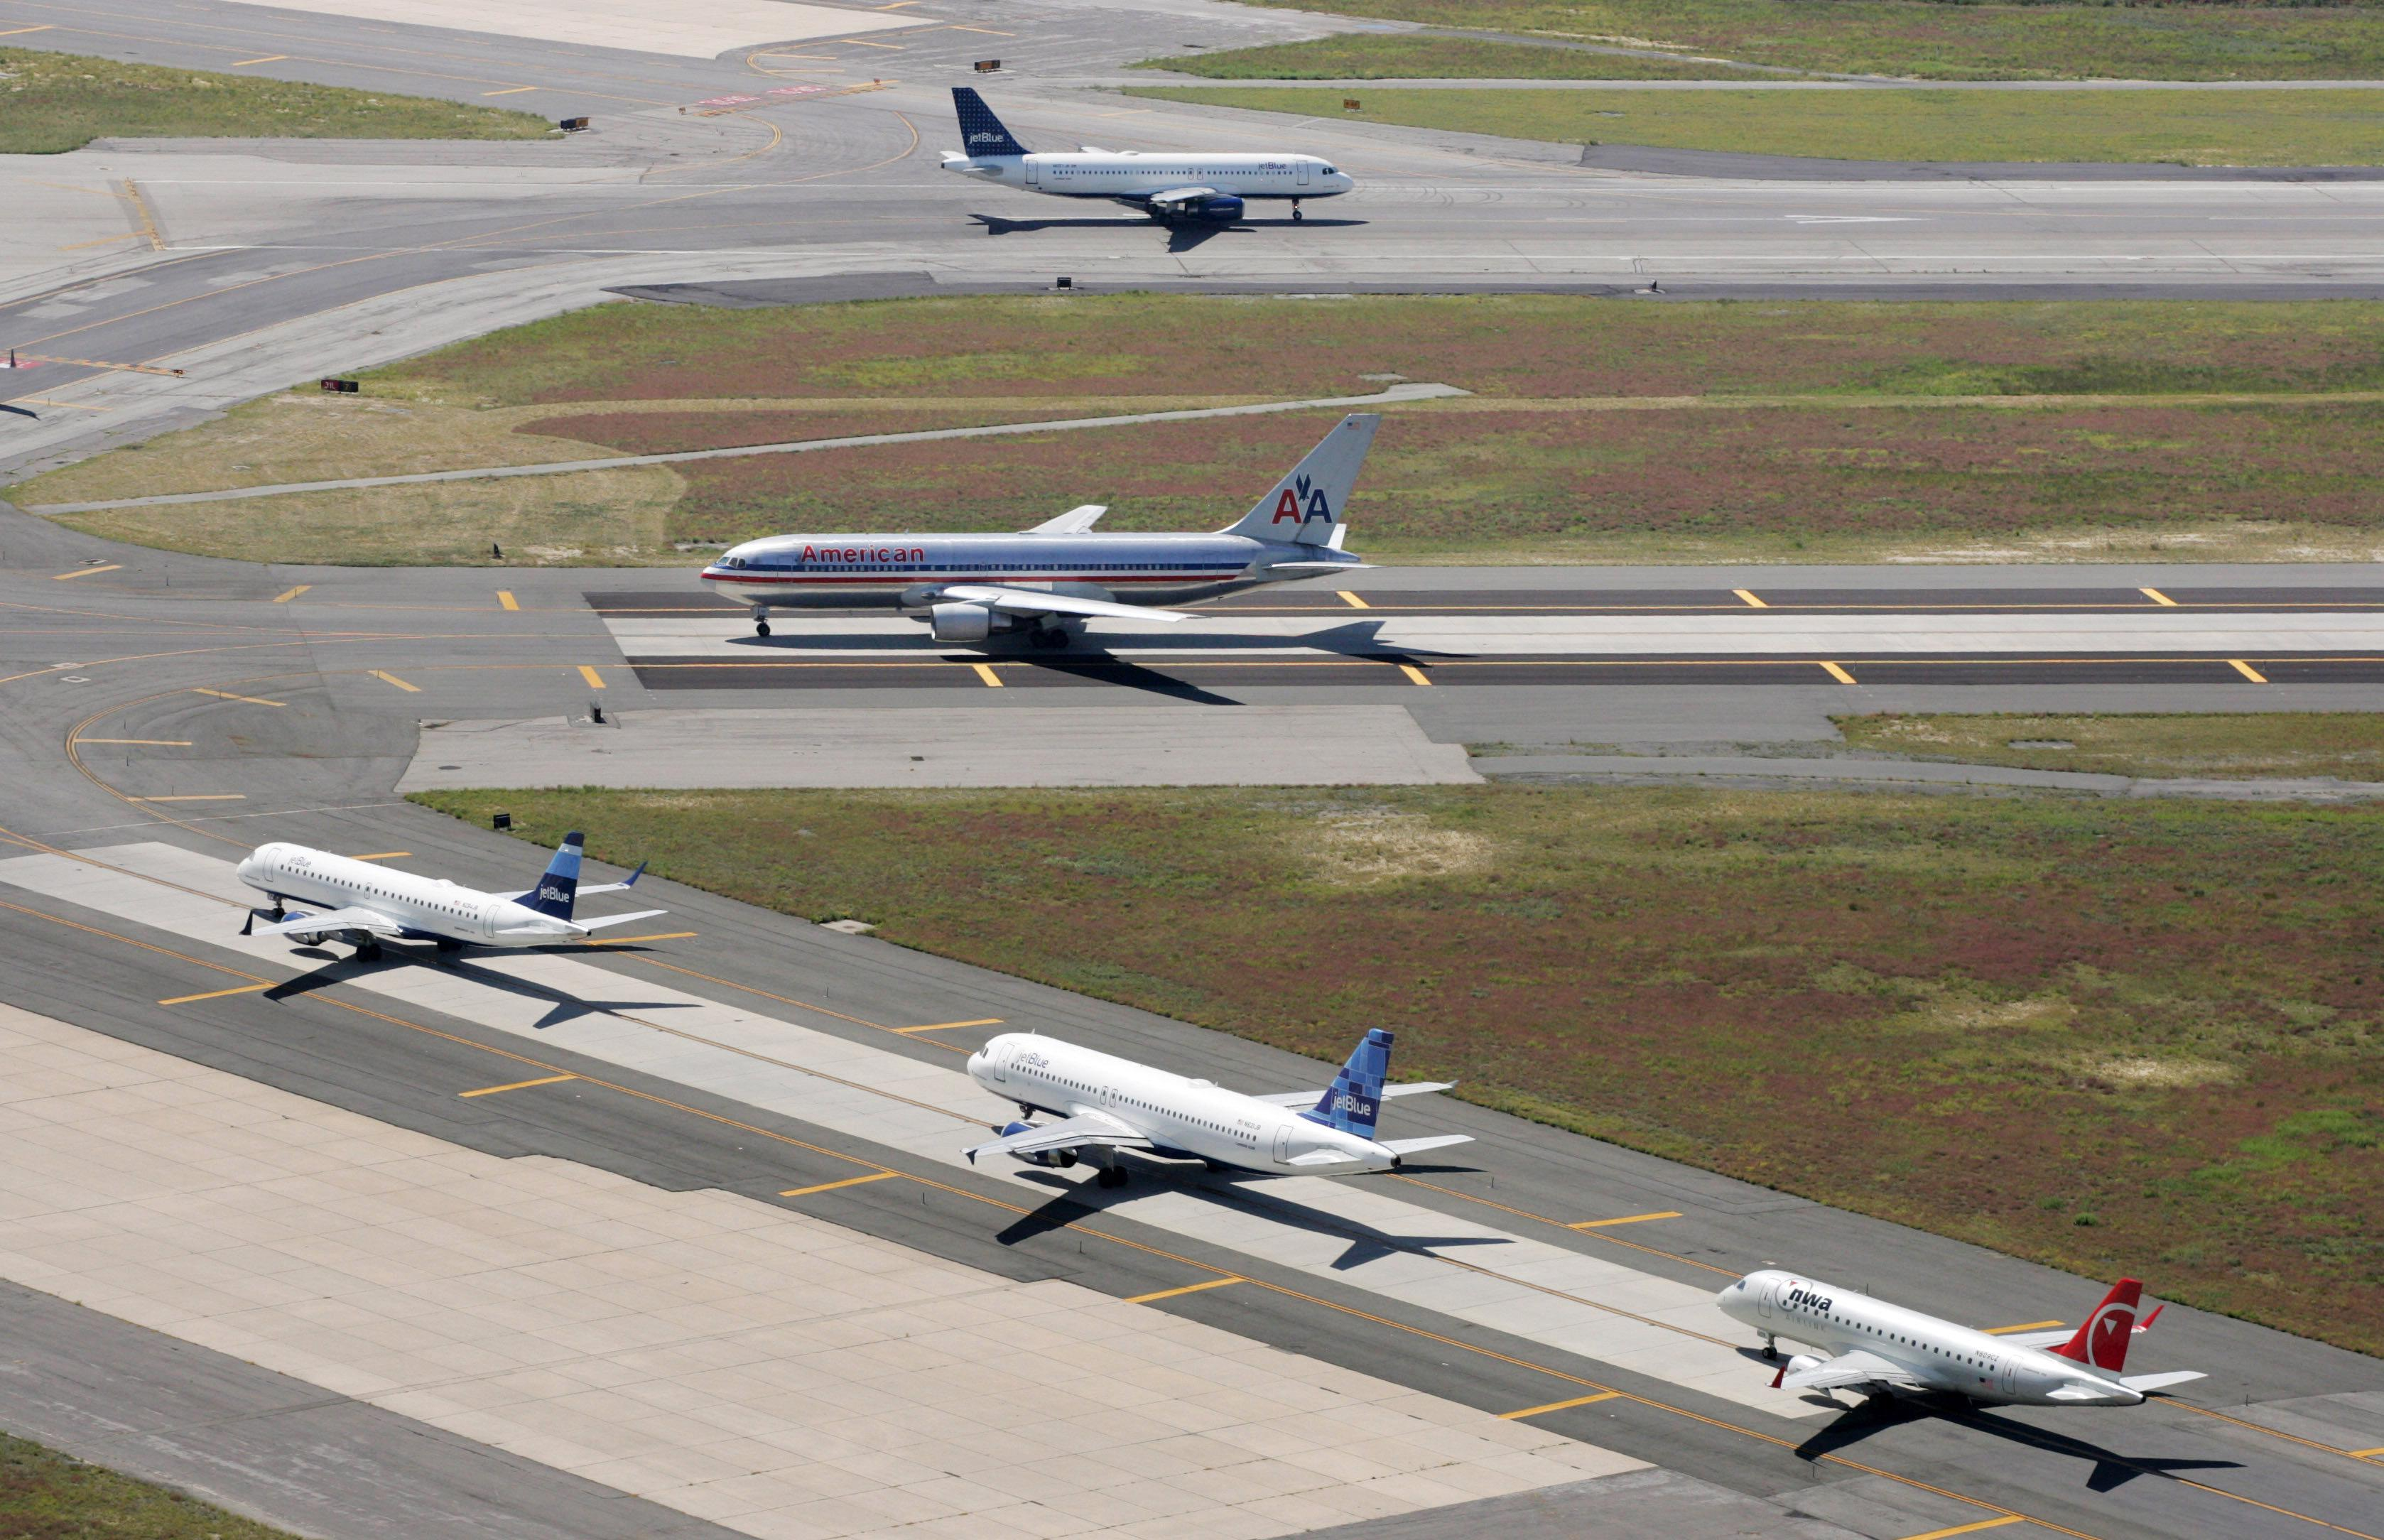 Stuck waiting: ground delays at US airports on the rise